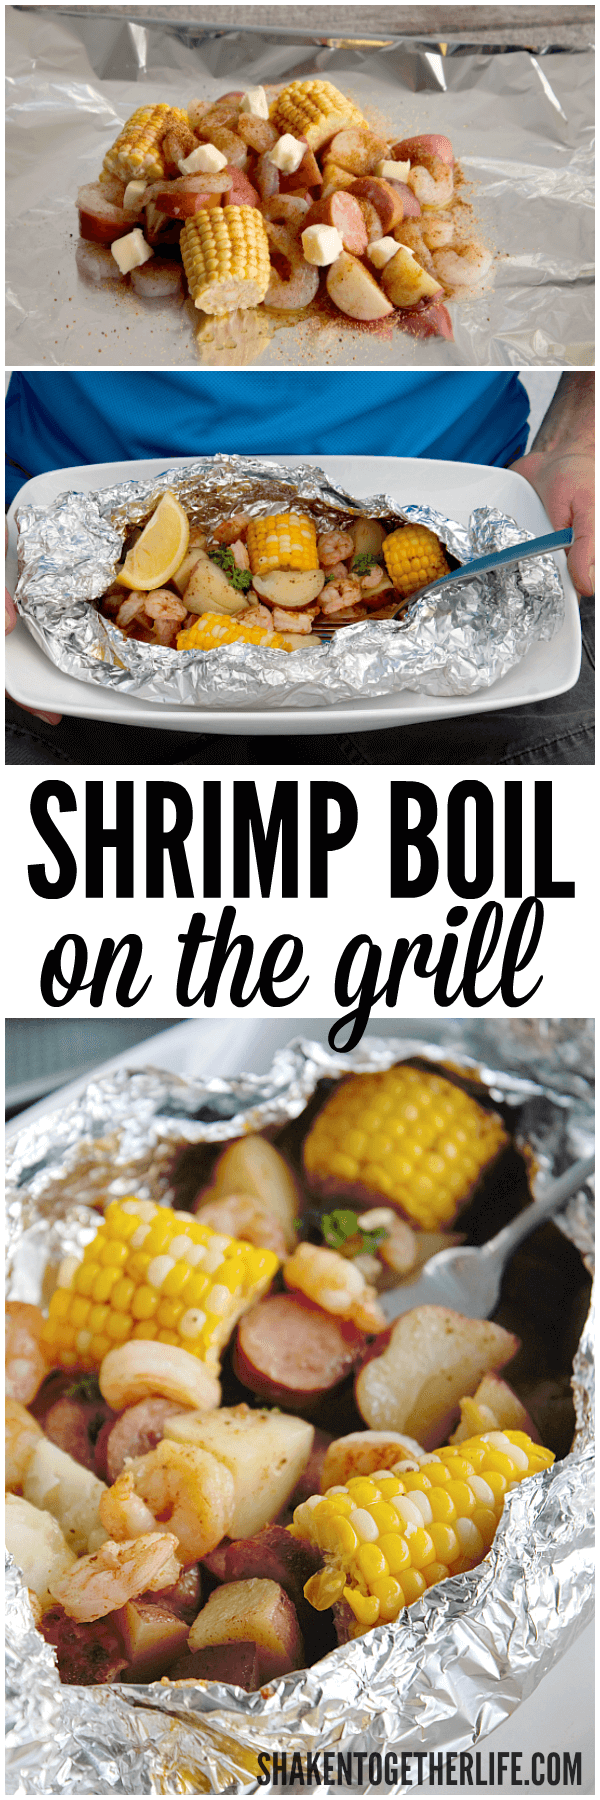 Shrimp Boil on the Grill! FL shrimp, sweet corn, smoky sausage and potatoes cook perfectly in individual foil packets and clean up couldn't be easier!